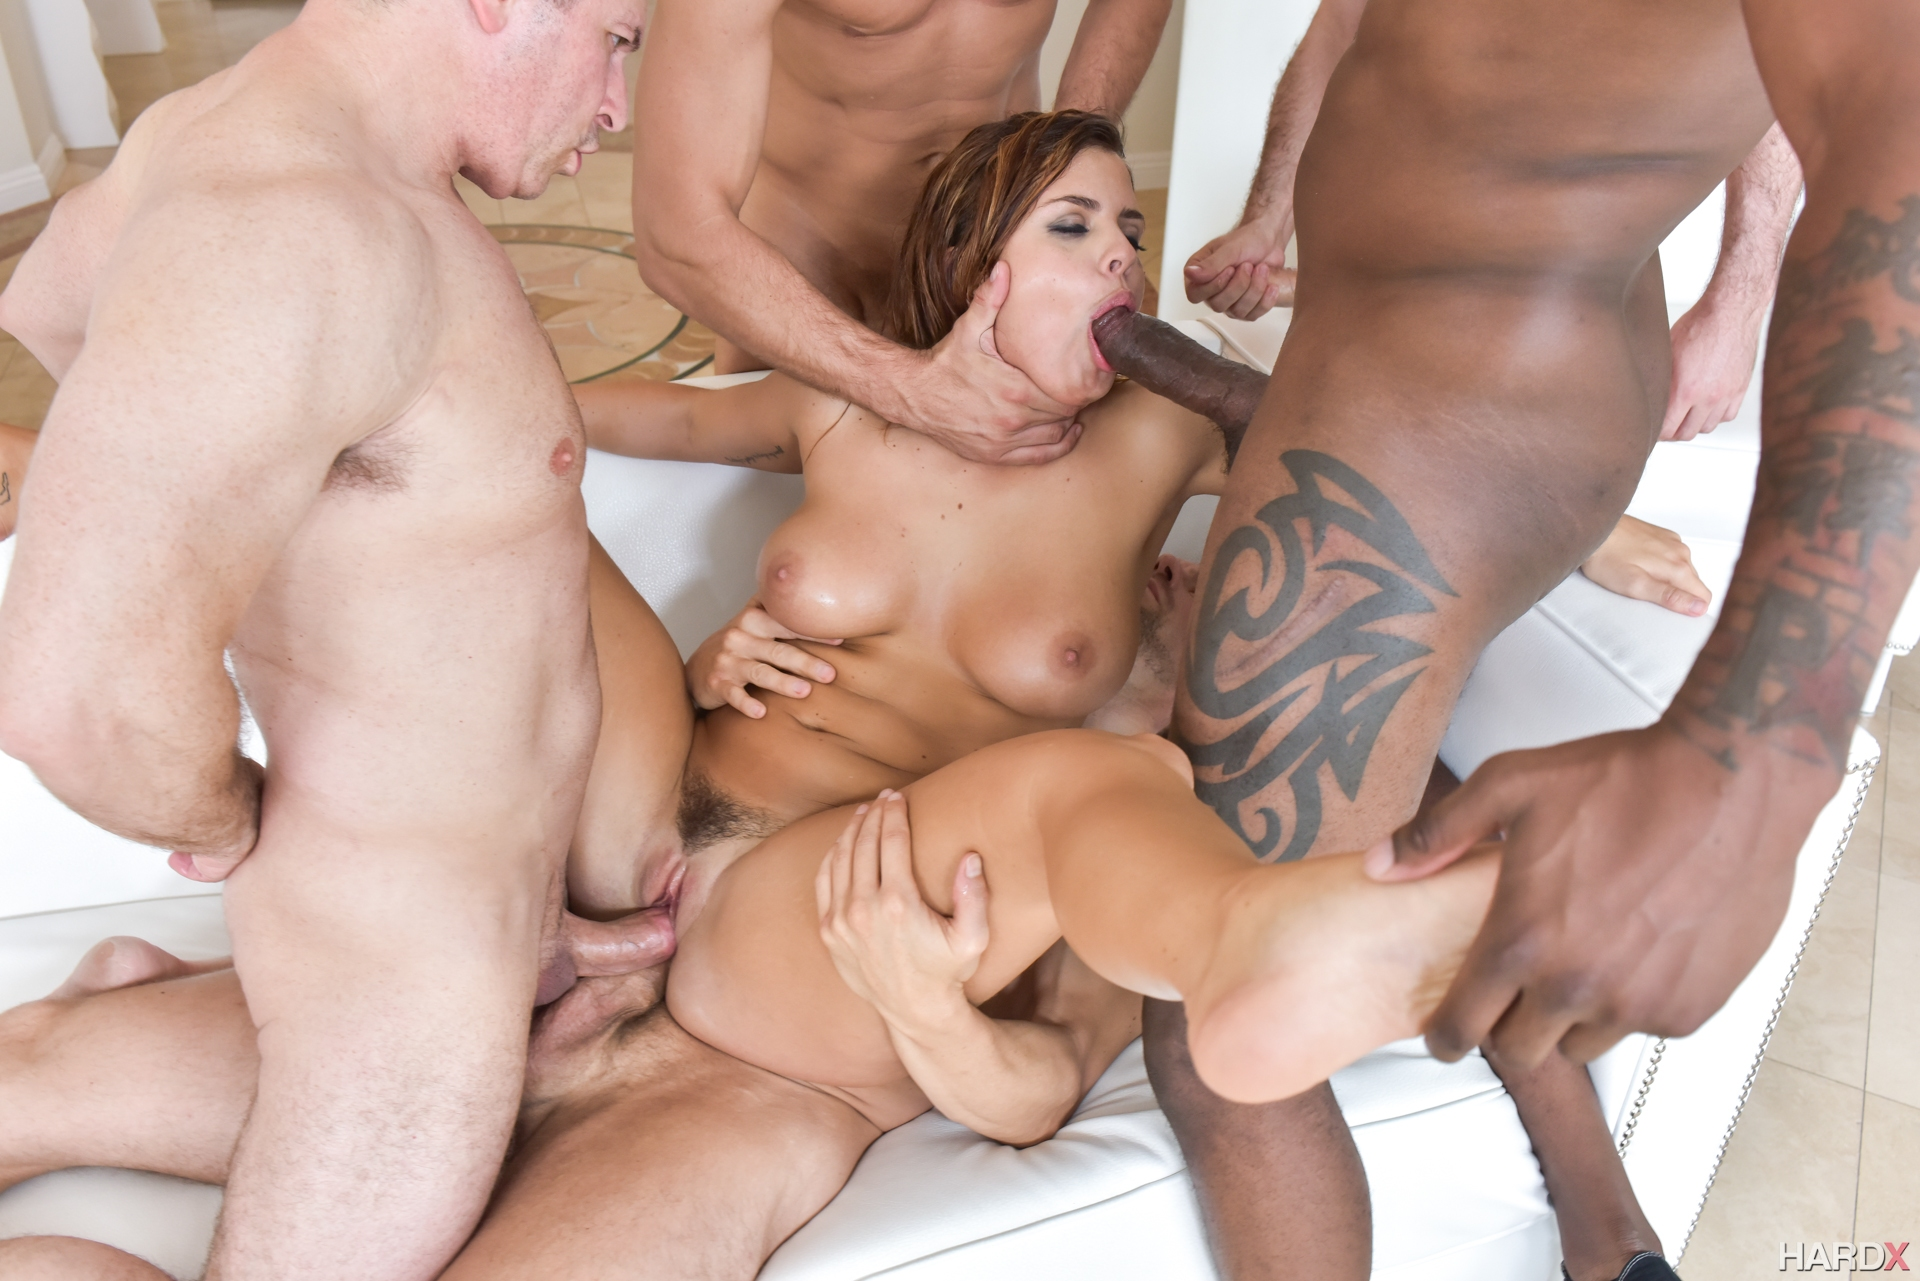 Free first gangbang video, anal sex a sin